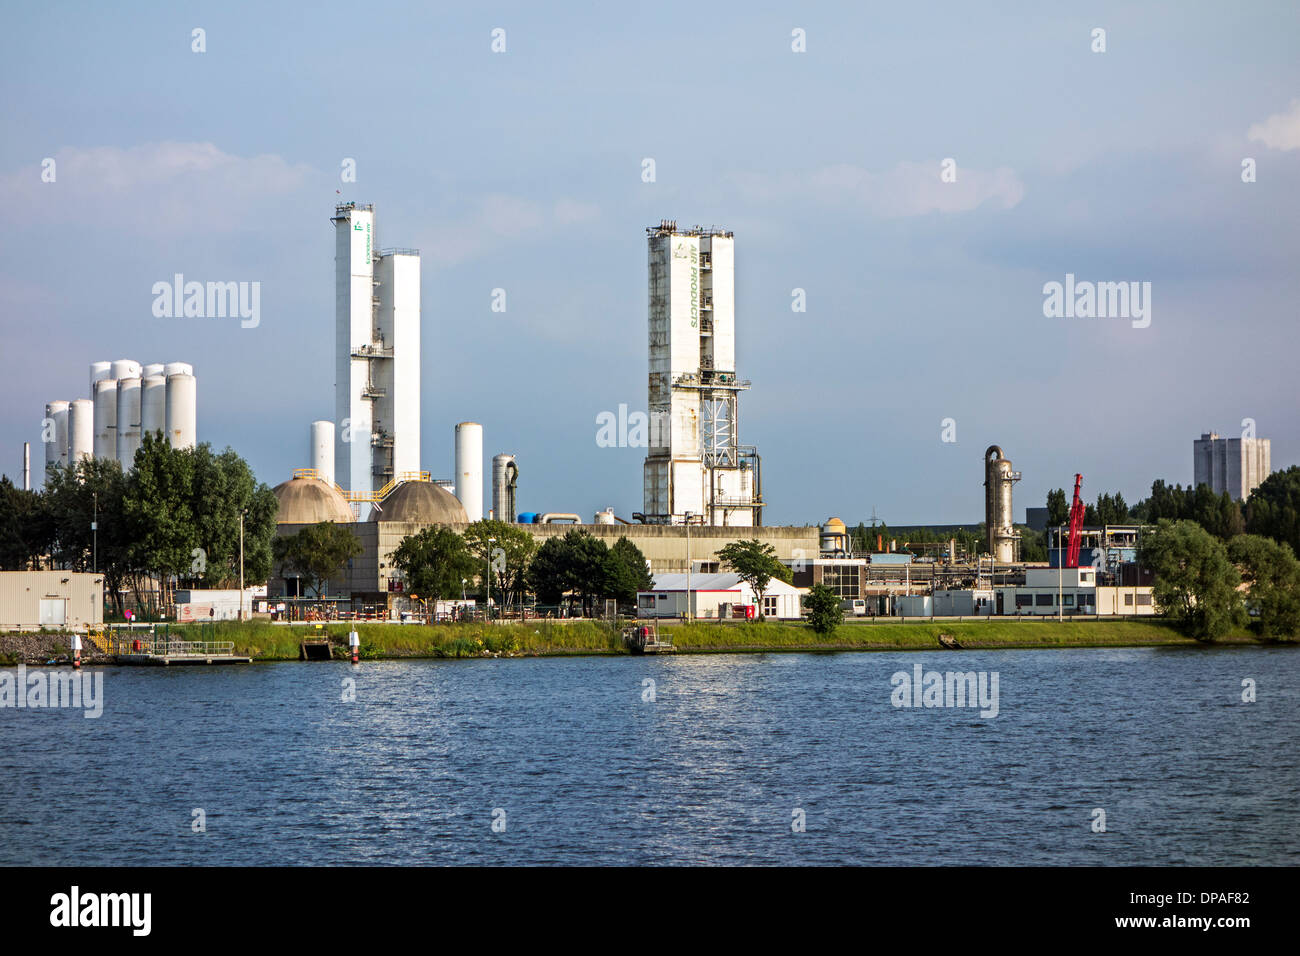 Air Products, supplier of industrial gases like oxygen, nitrogen, argon in the port of Ghent, East Flanders, Belgium - Stock Image